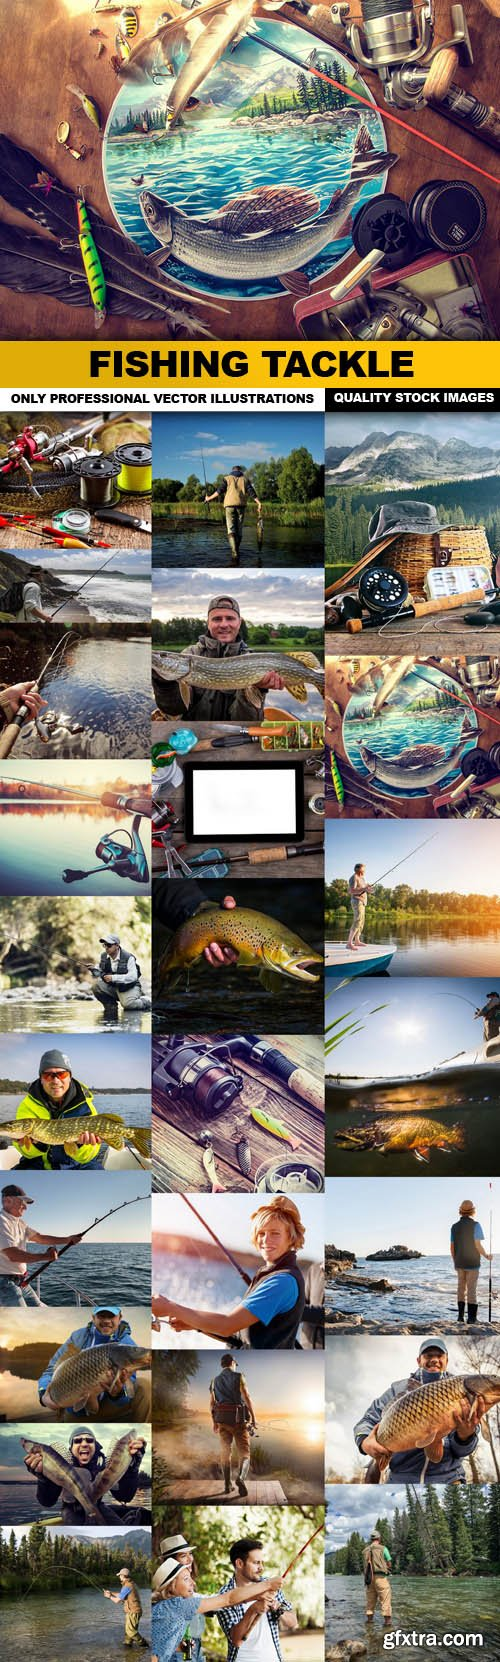 Fishing Tackle - 25 HQ Images